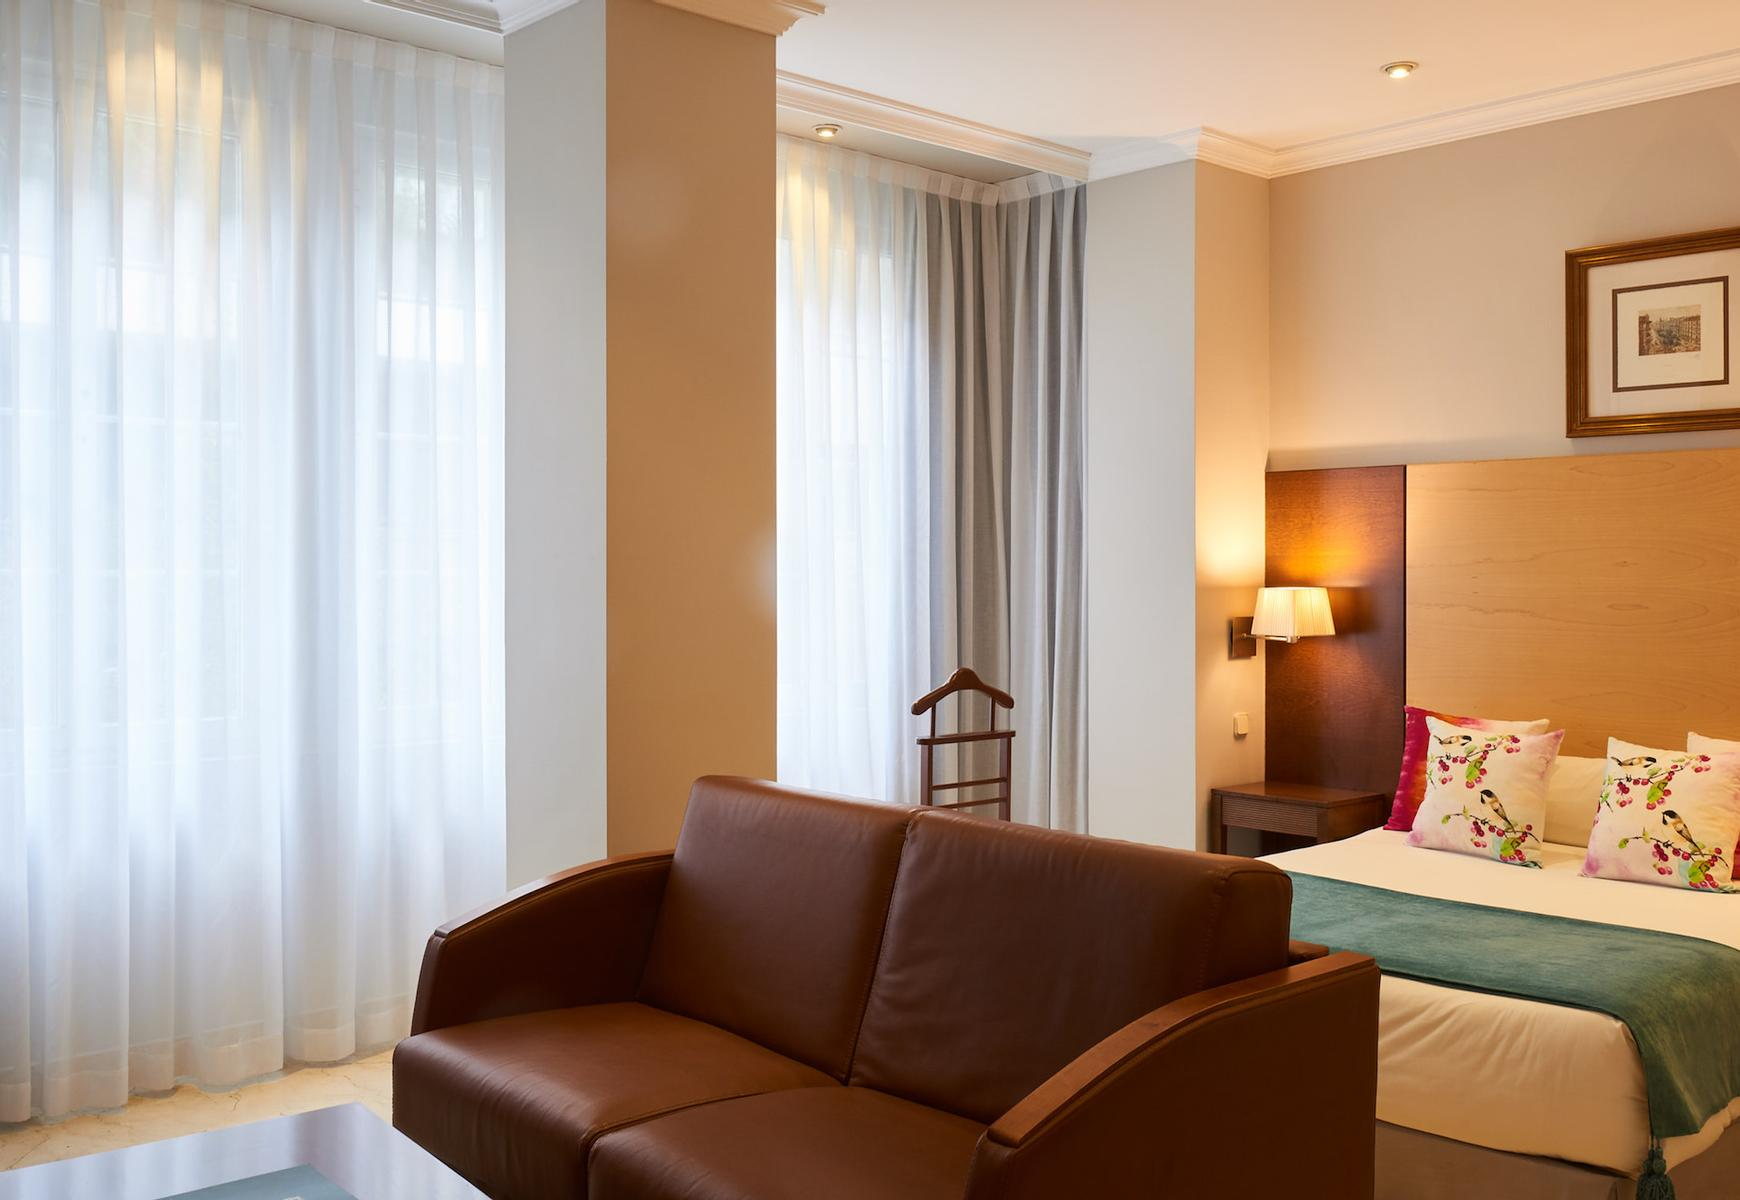 Hotel Suites Barrio de Salamanca | Madrid | Accommodation 02 - 1